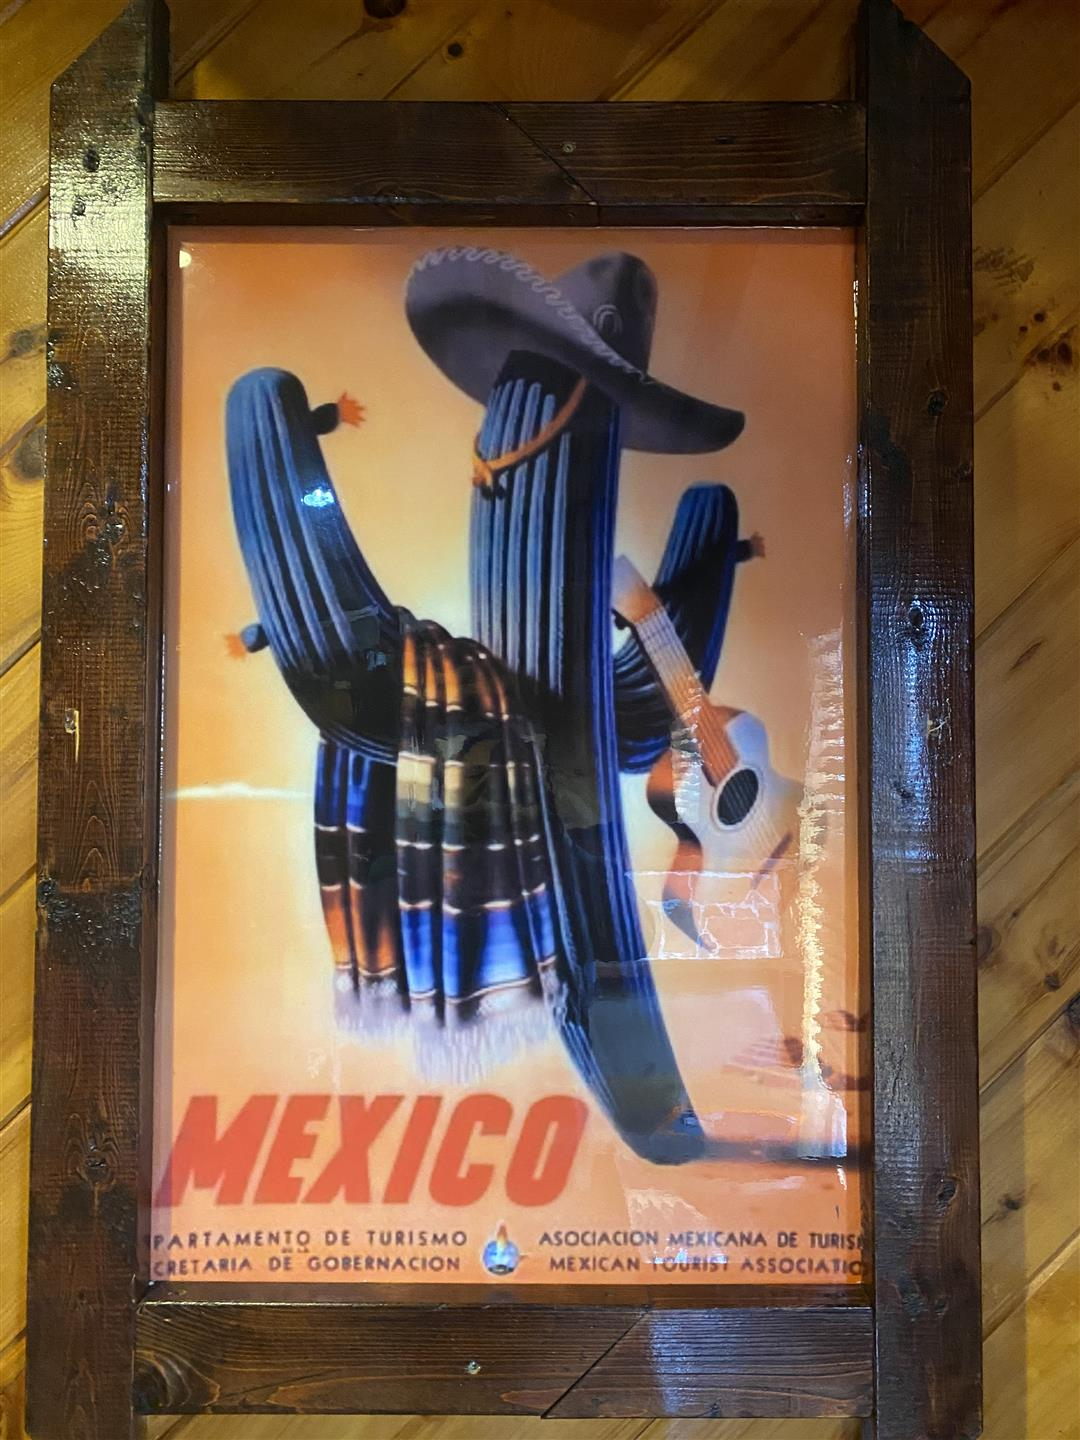 drawing of a cactus wearing a sombrero and holding a guitar